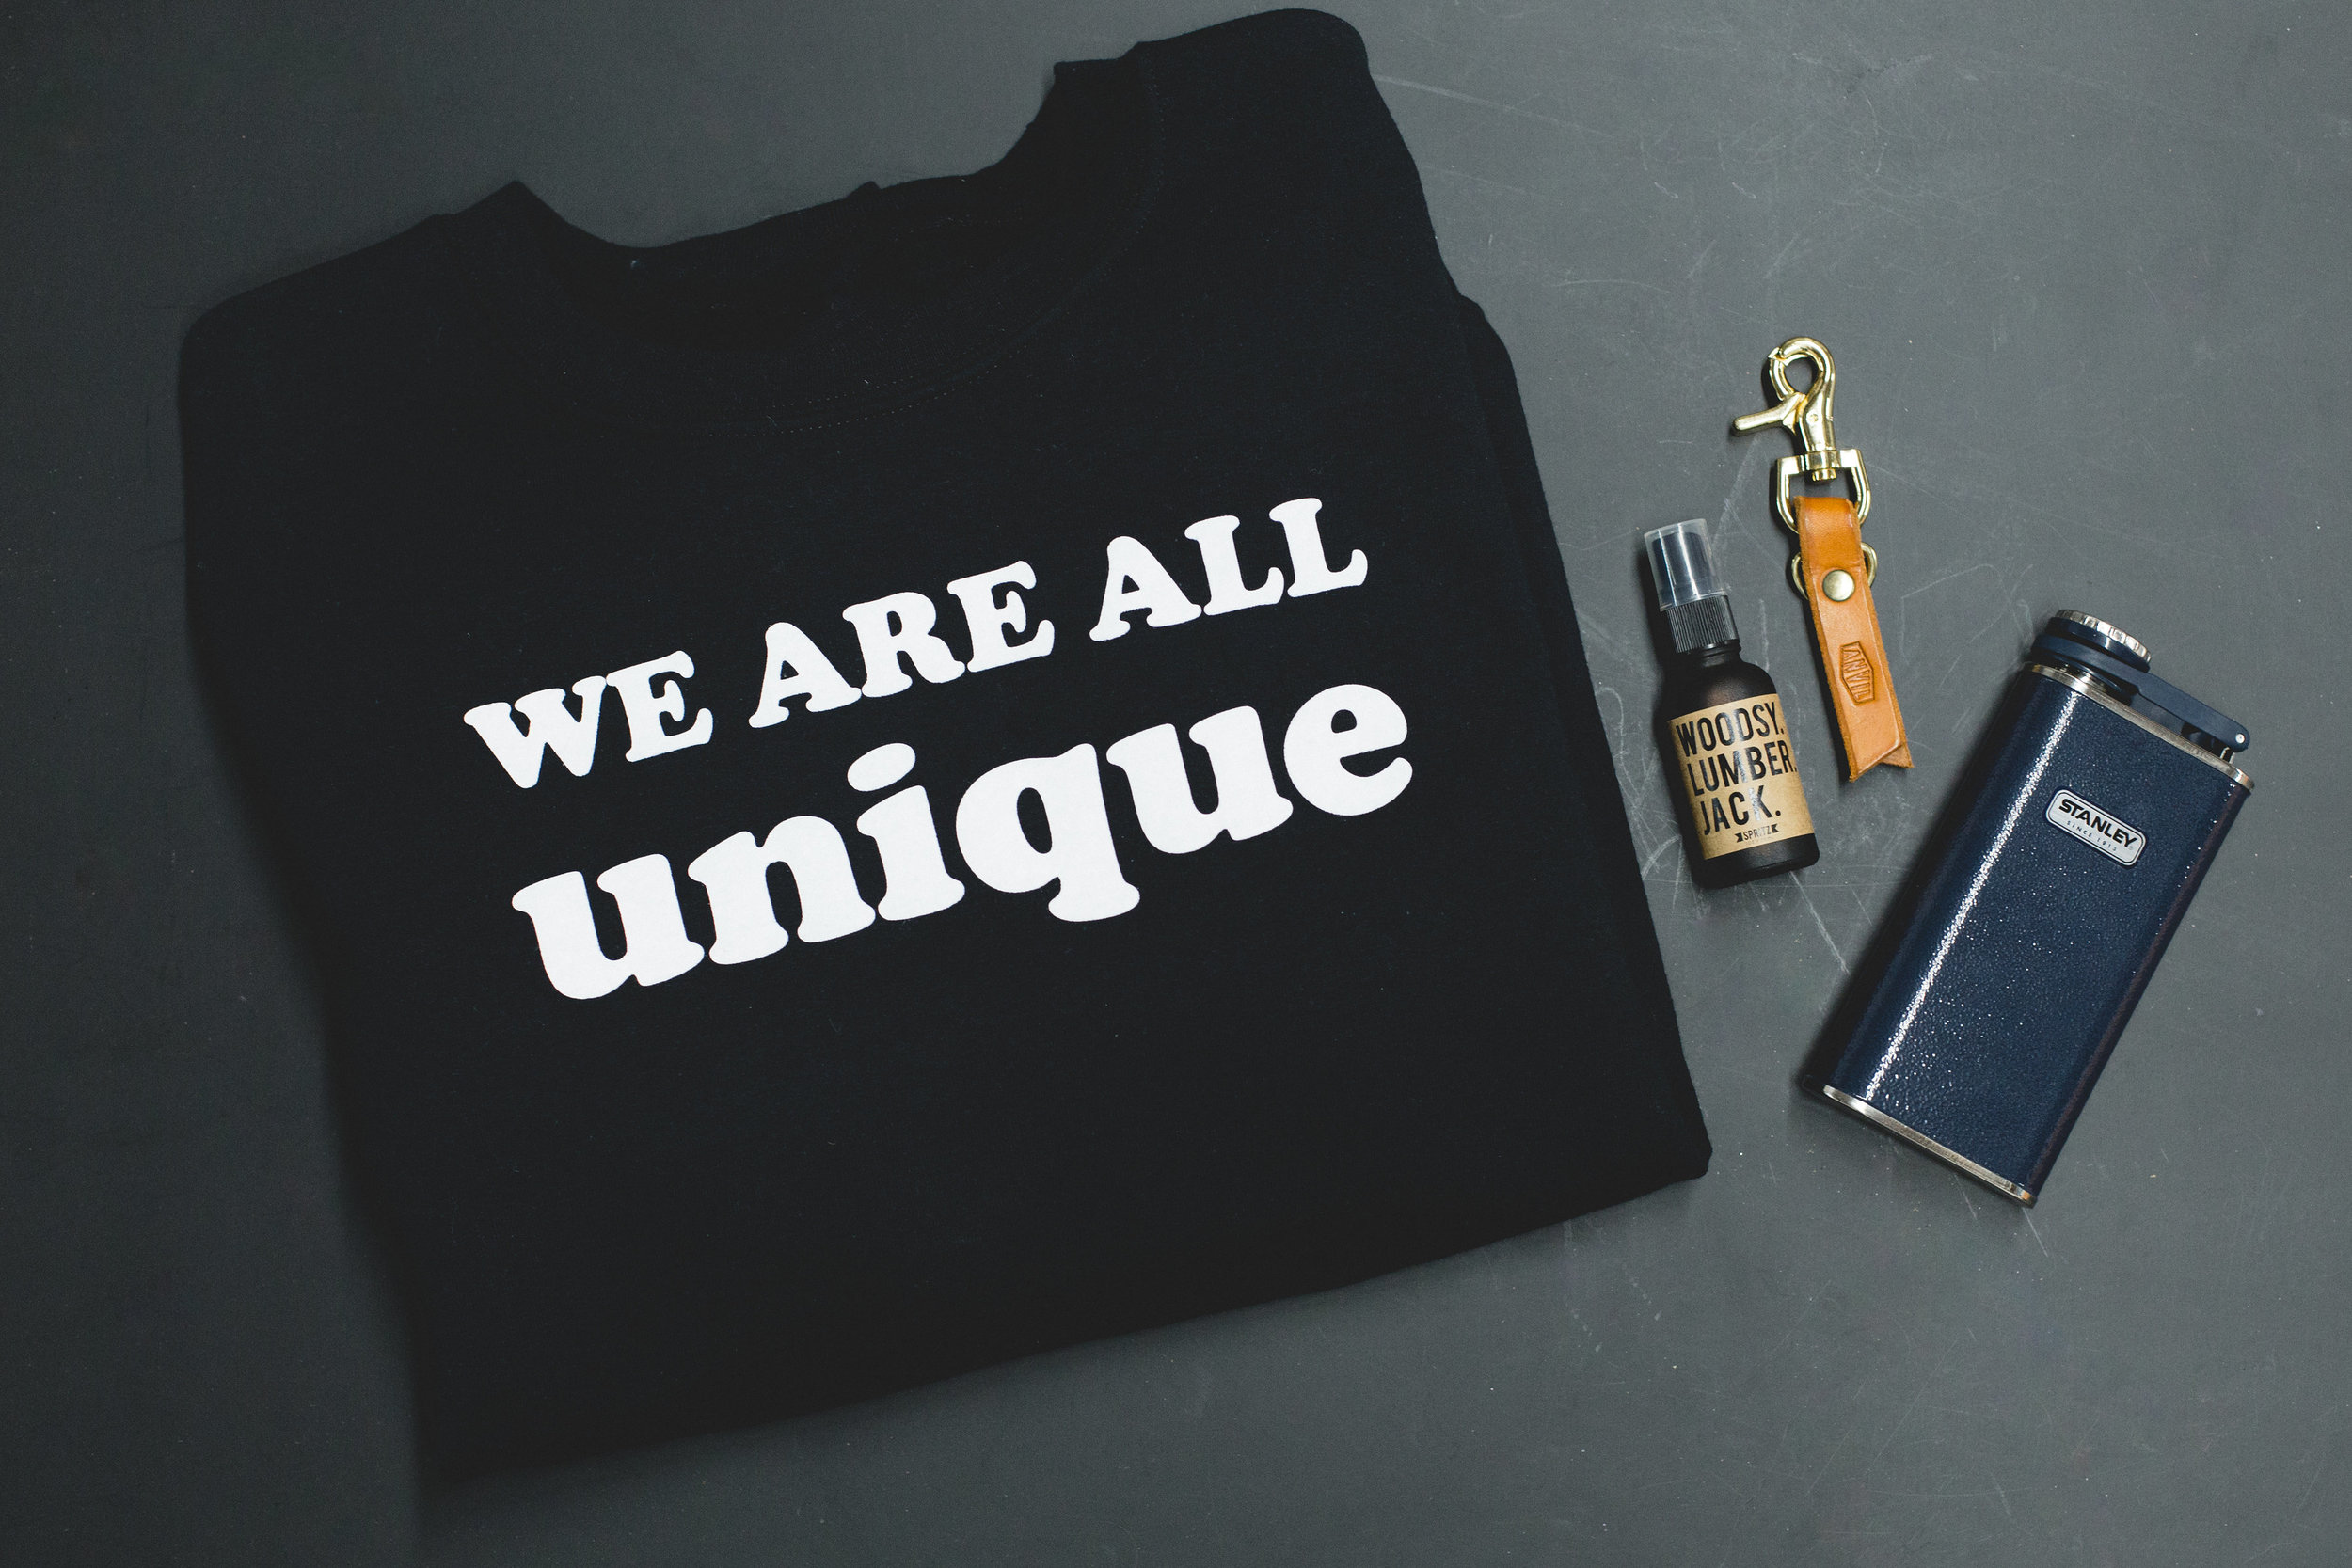 Unique Essentials Kit! - Stay fresh with a cozy Unique sweatshirt and classic STANLEY flask, topped with a leather Anvil keychain and Woodsy Lumberjack spray from Happy Spritz.